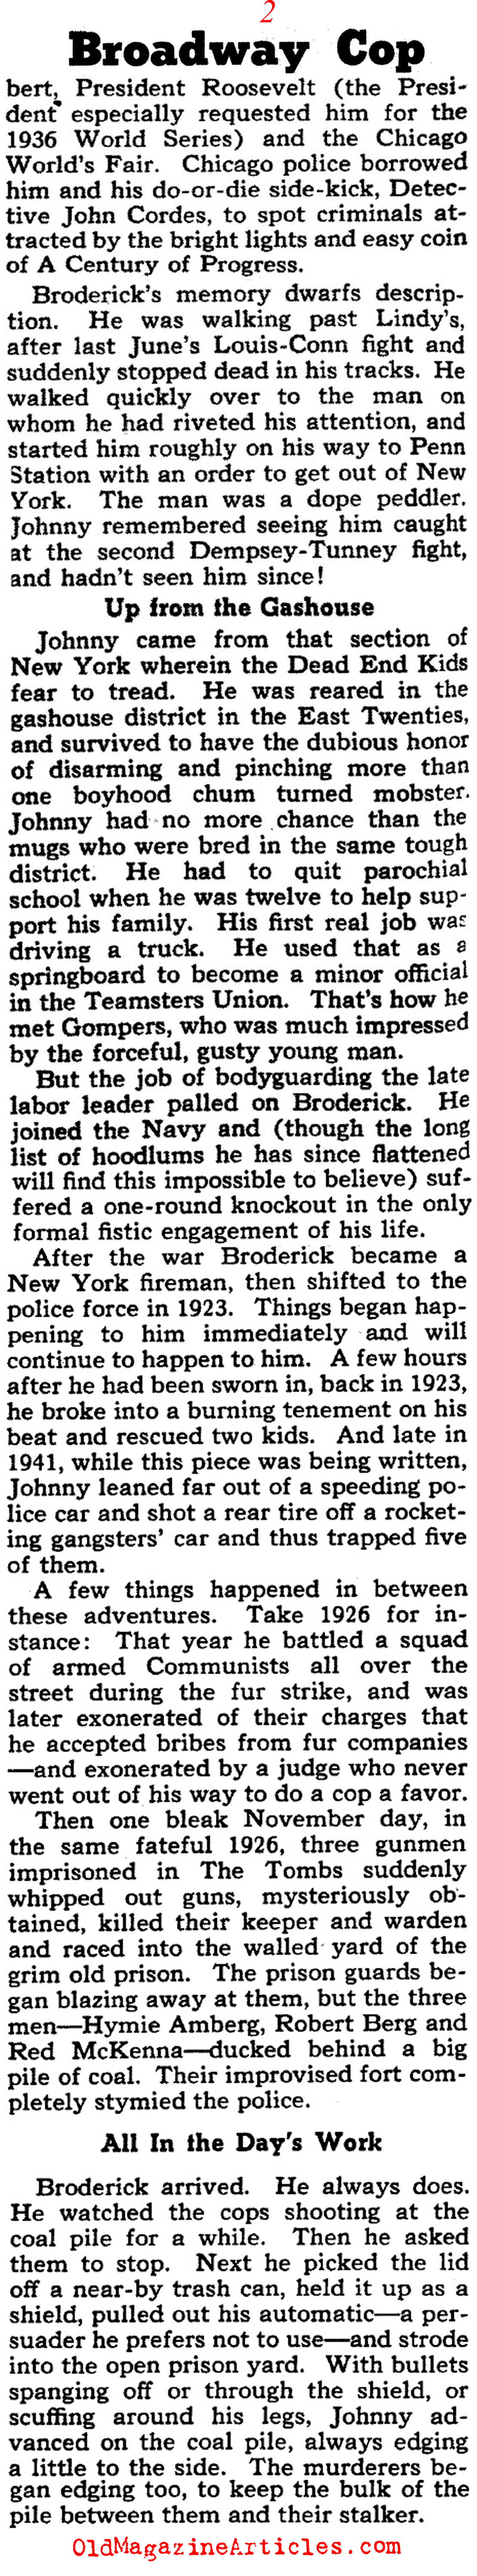 One Tough New York City Cop (Collier's Magazine, 1941)